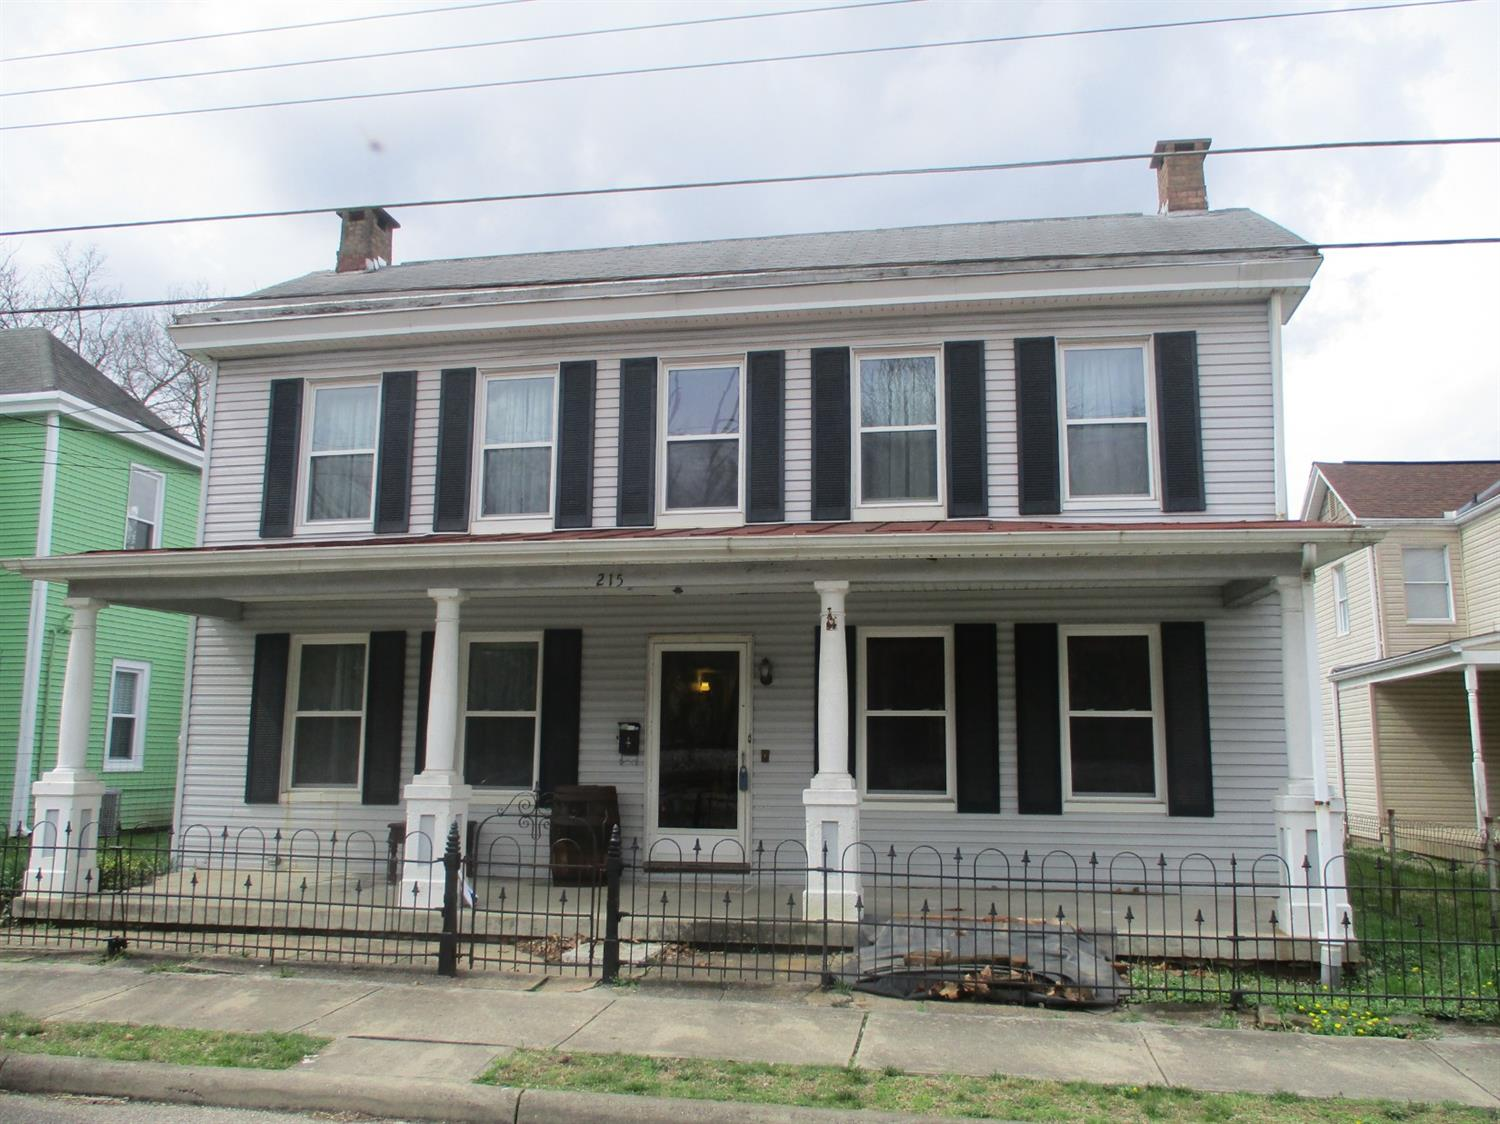 215 Bassett St Cleves OH